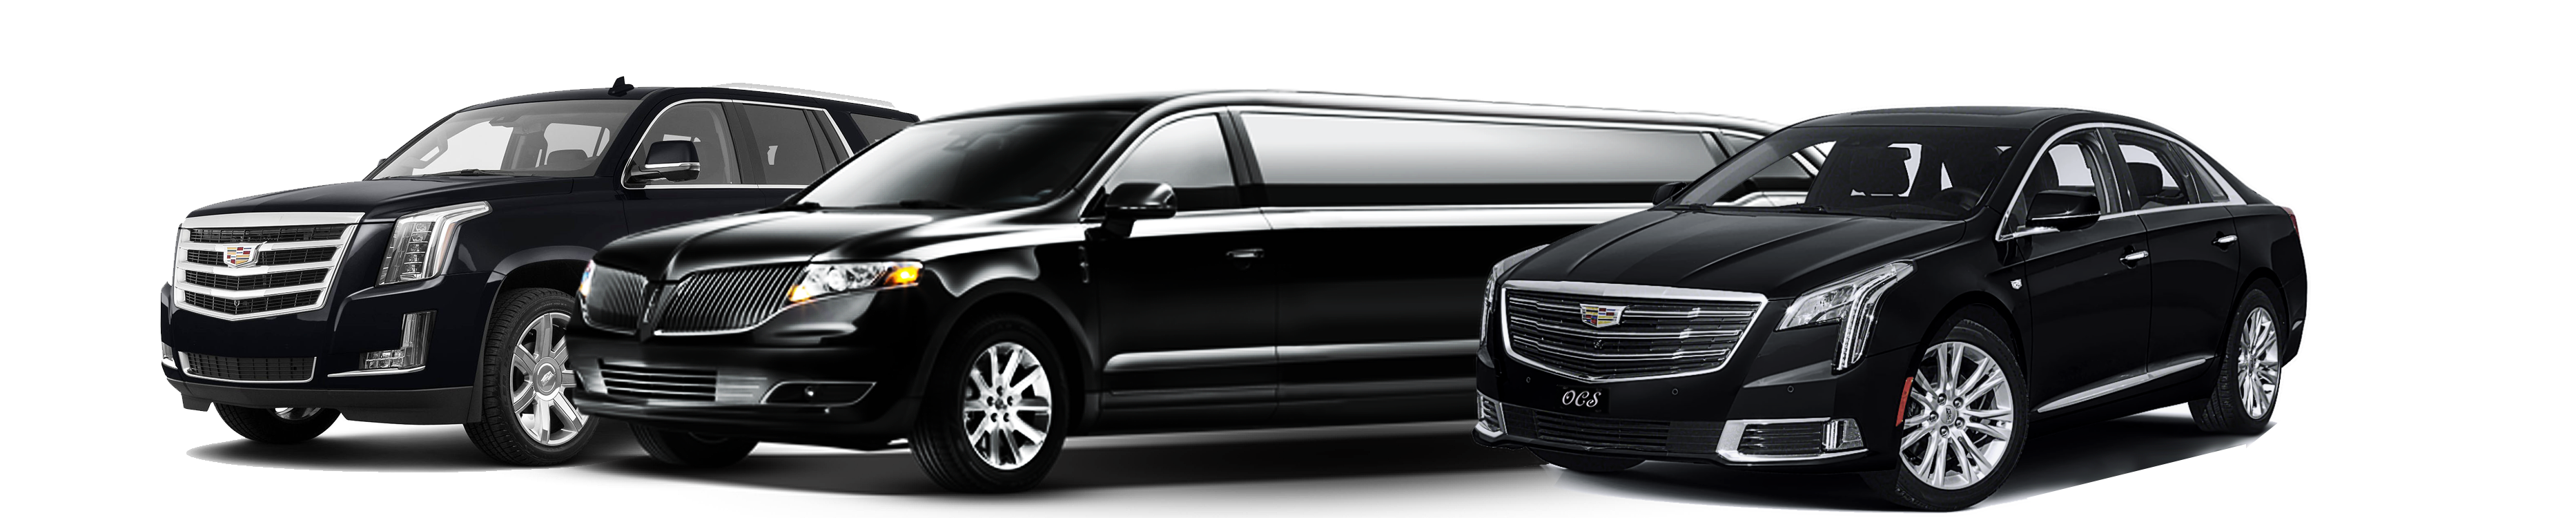 Cars, SUVs, Limousines for Proms in Orlando